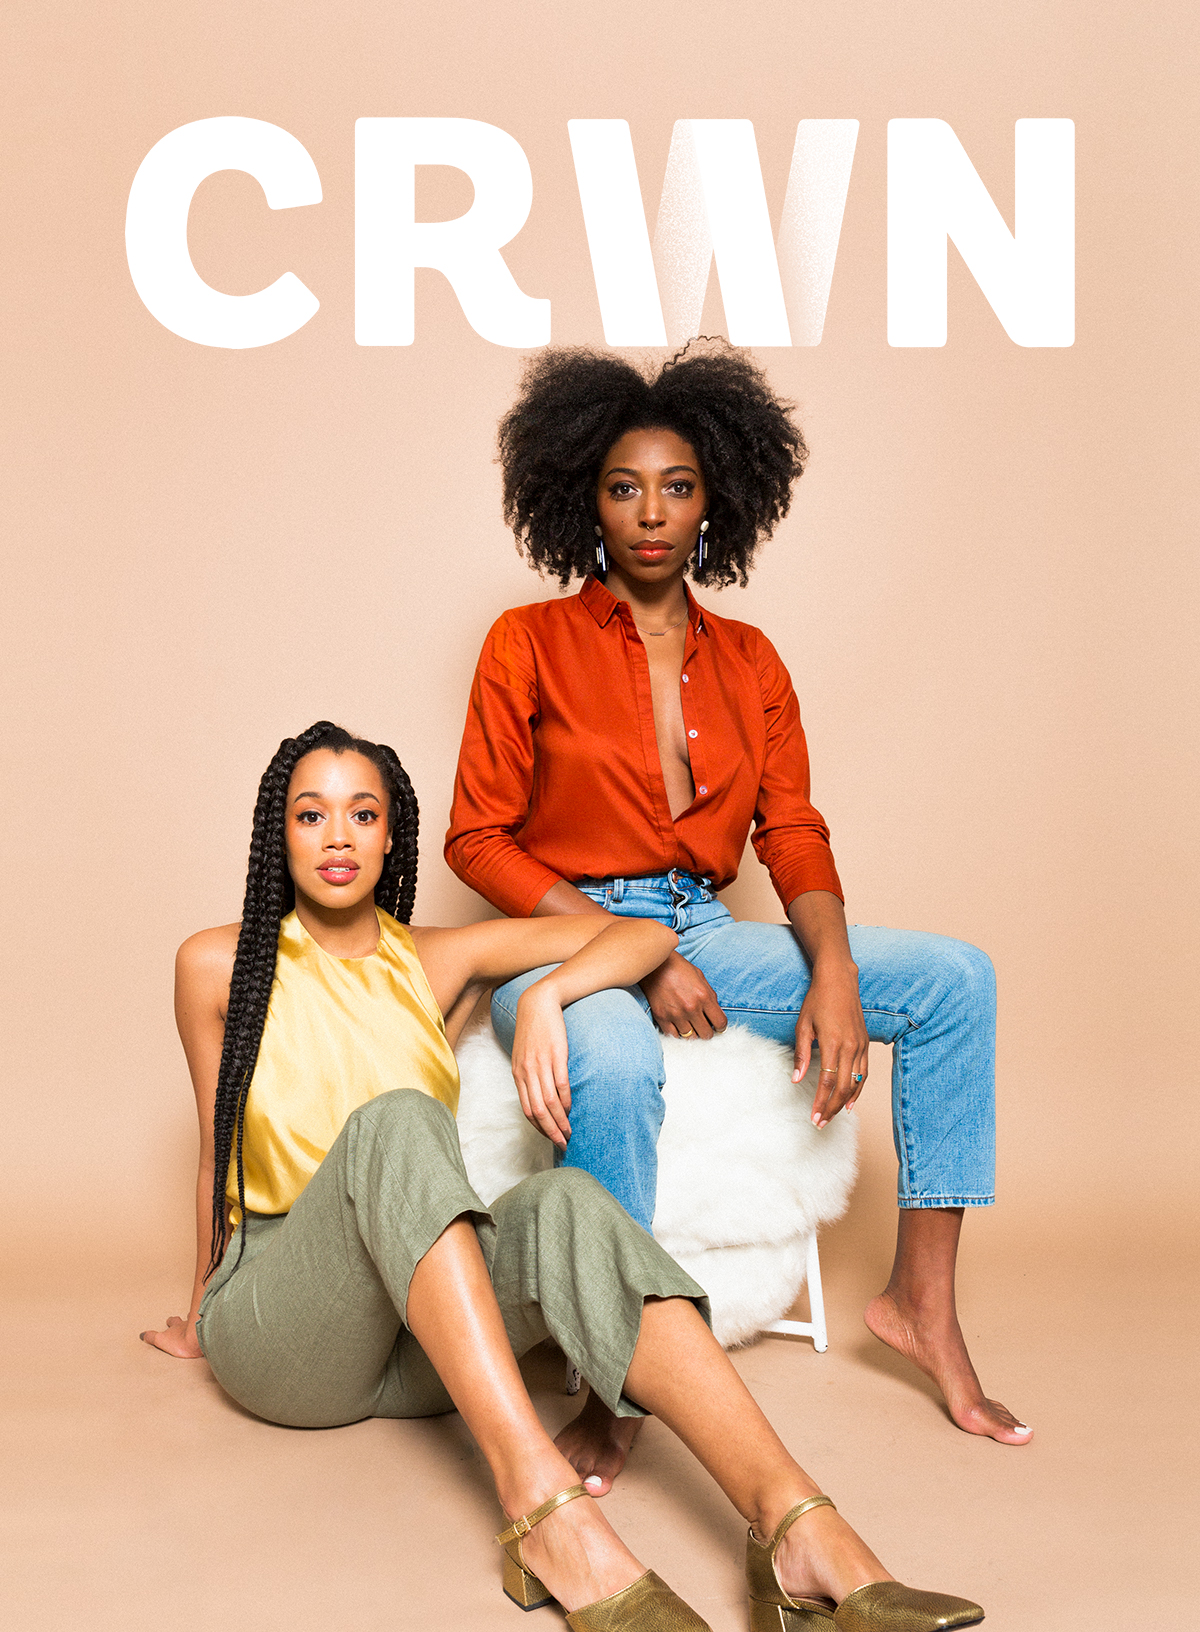 The Cover of the Love Issue, featuring Lauren Ash (Left) and Deun Ivory (Right)